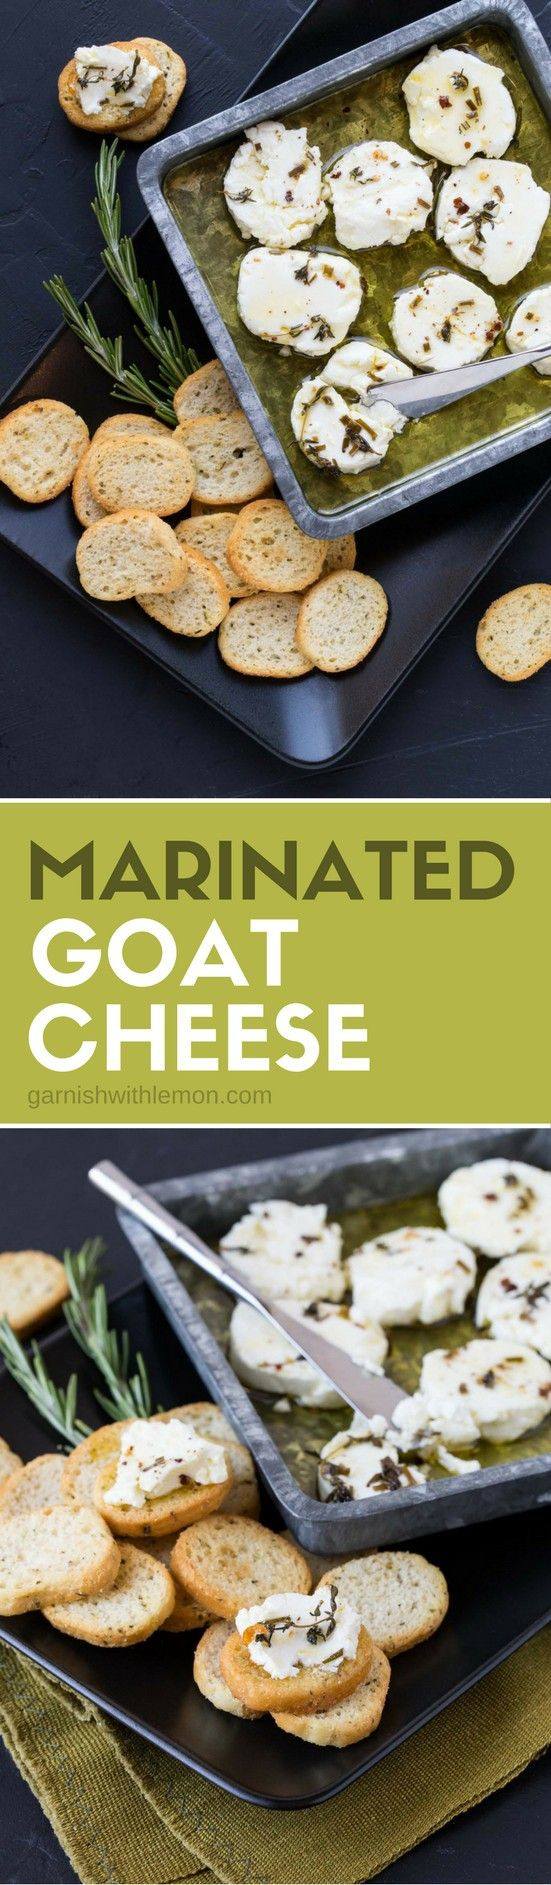 Calling all goat cheese lovers! This Marinated Goat Cheese recipe is a perfect appetizer for parties. Not only is it delicious, but it is make-ahead and uses just a handful of ingredients.